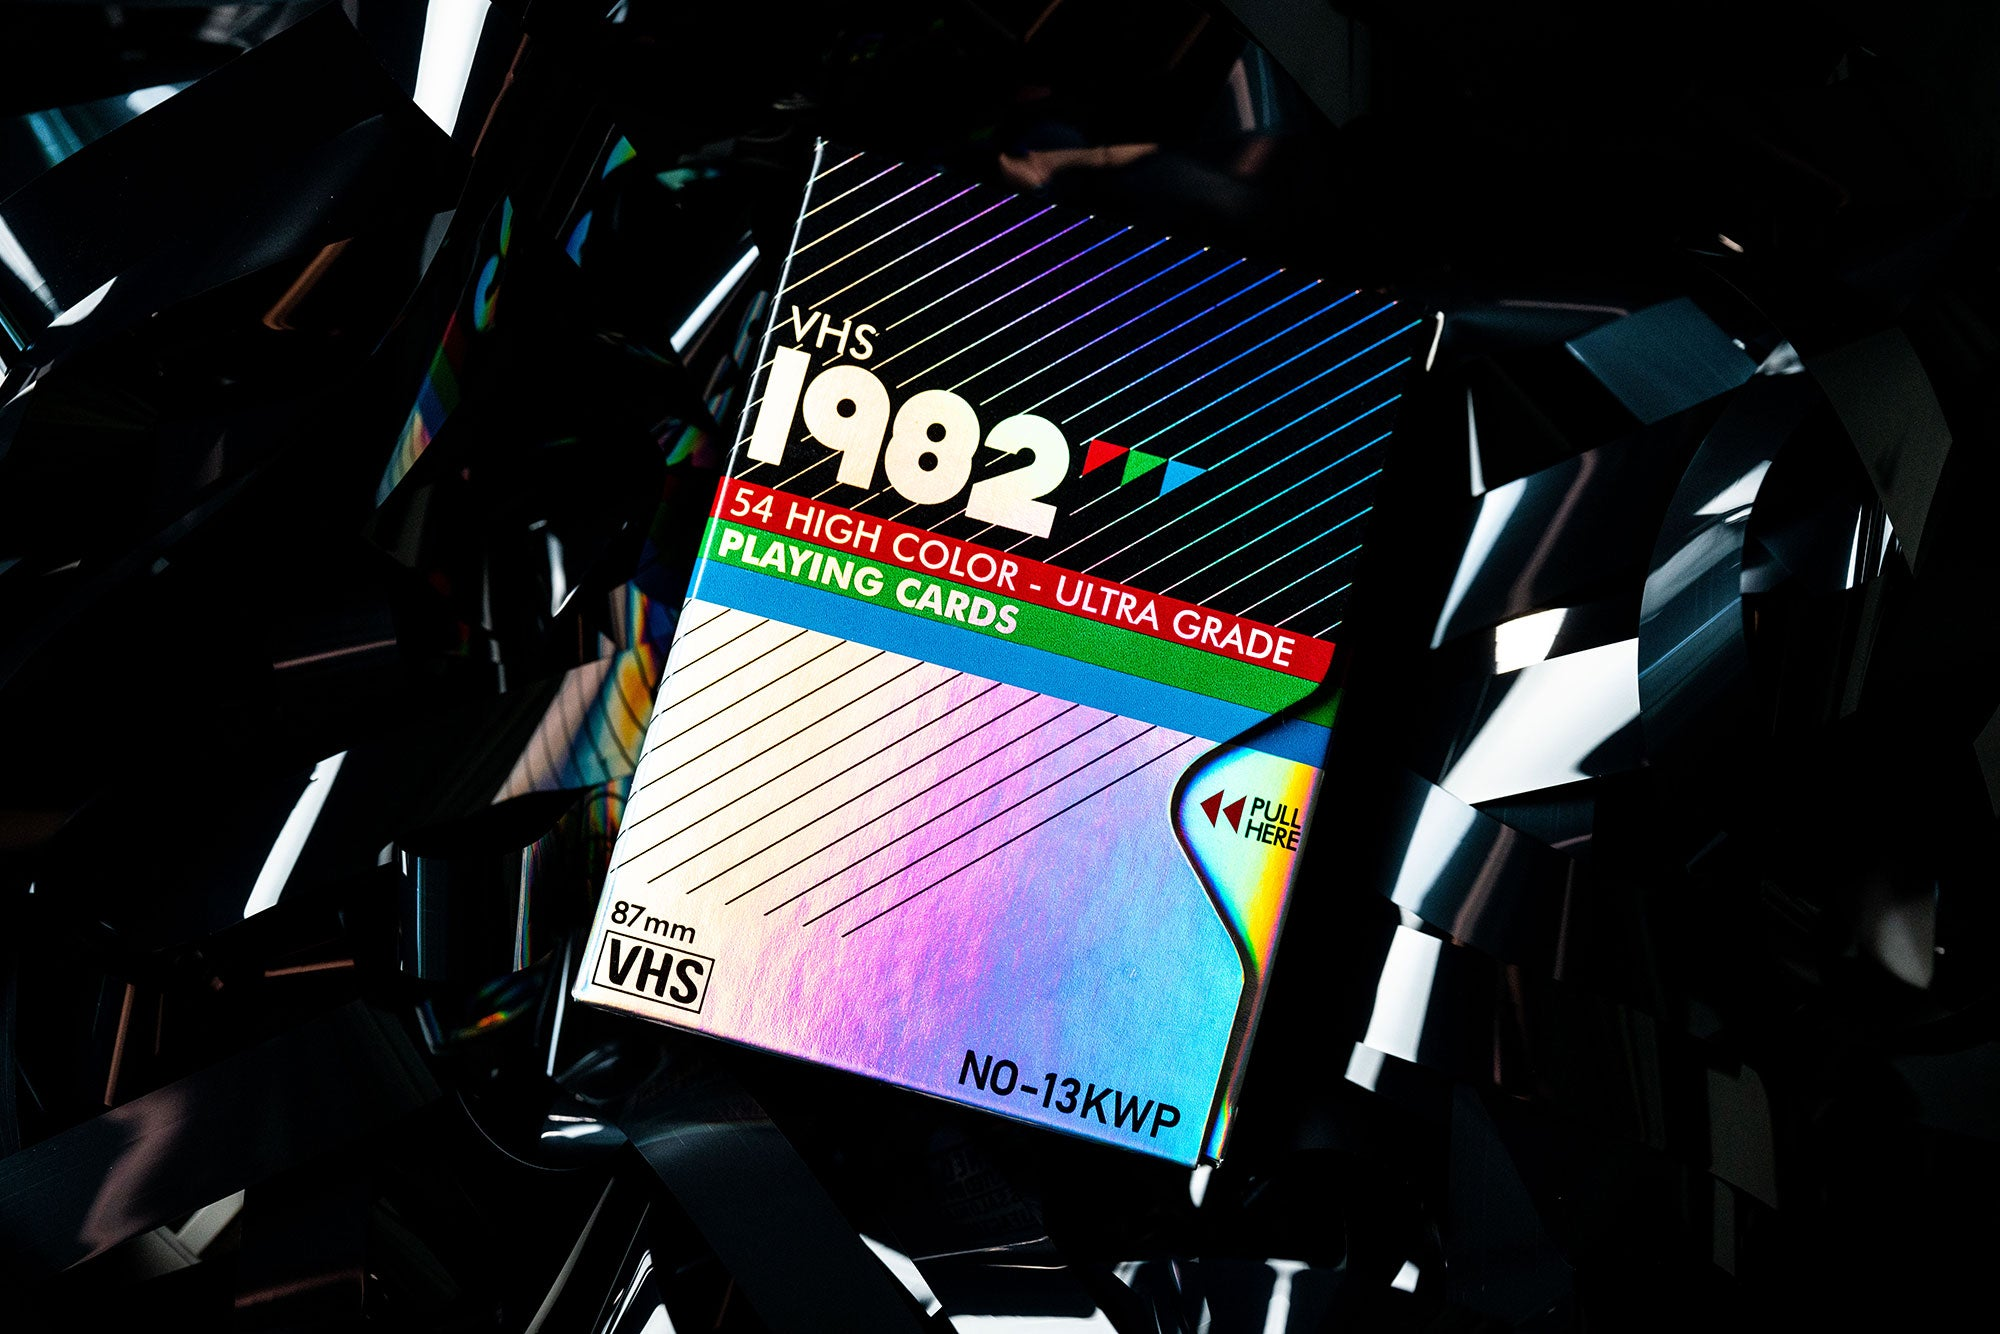 Holographic VHS 1982